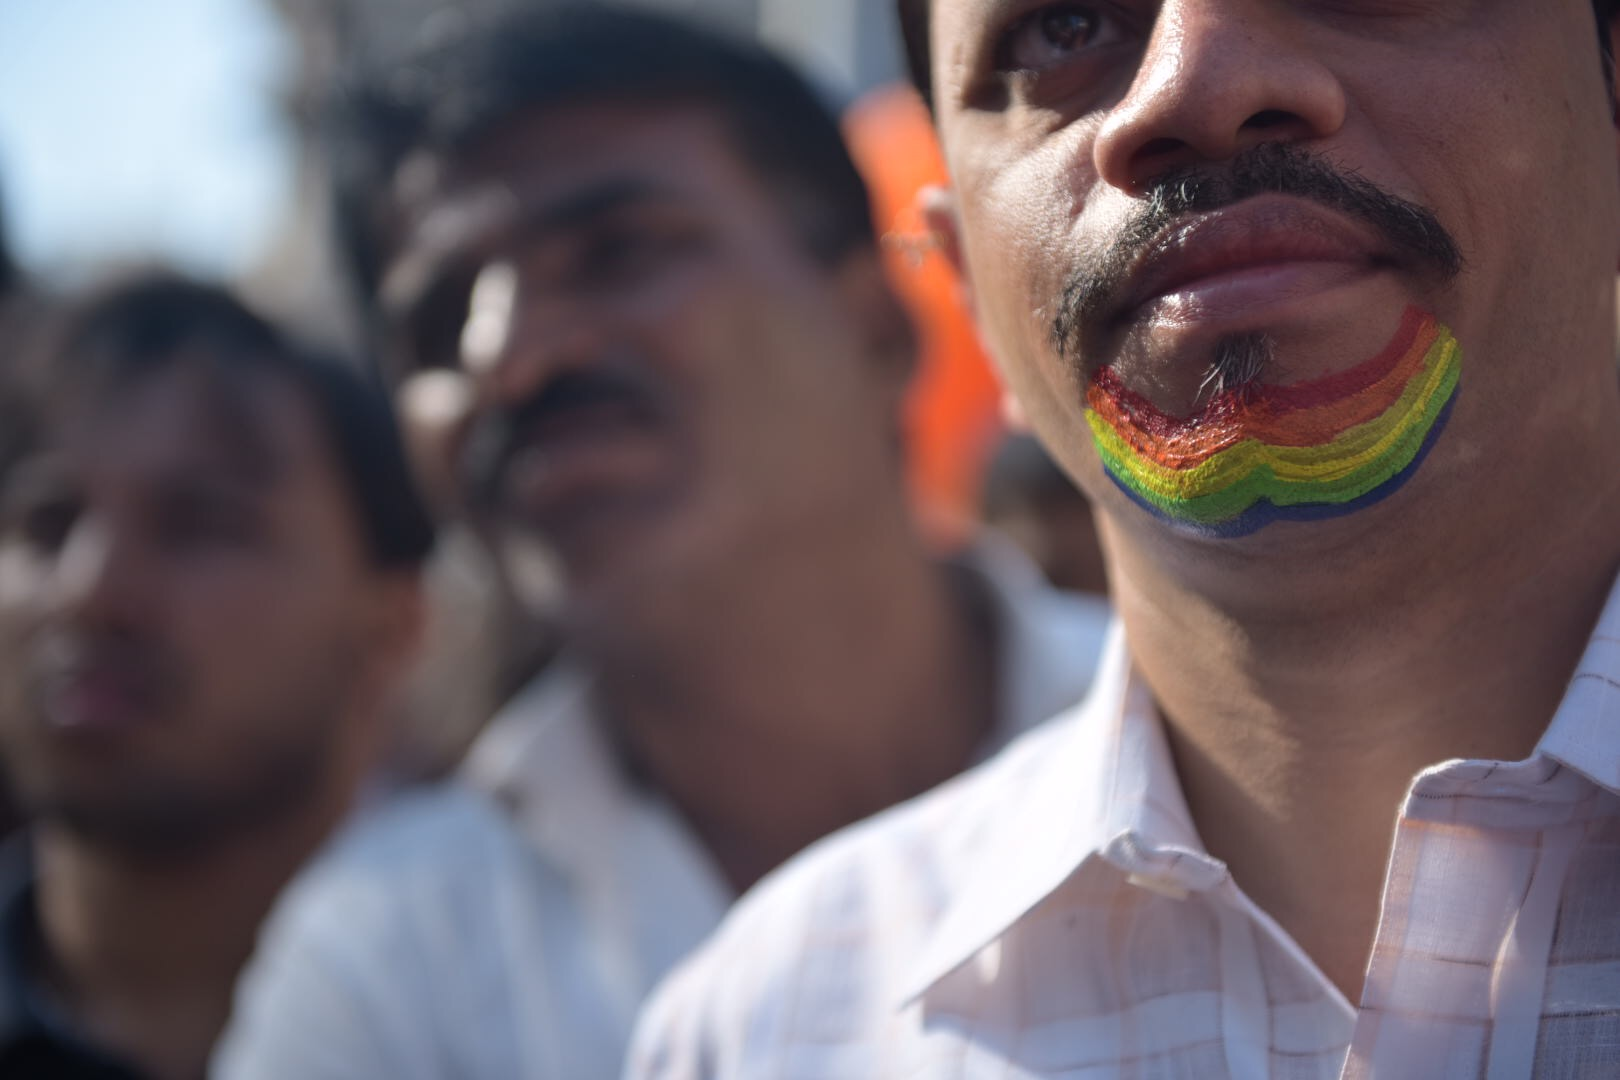 One of the participants wore his support on his chin.